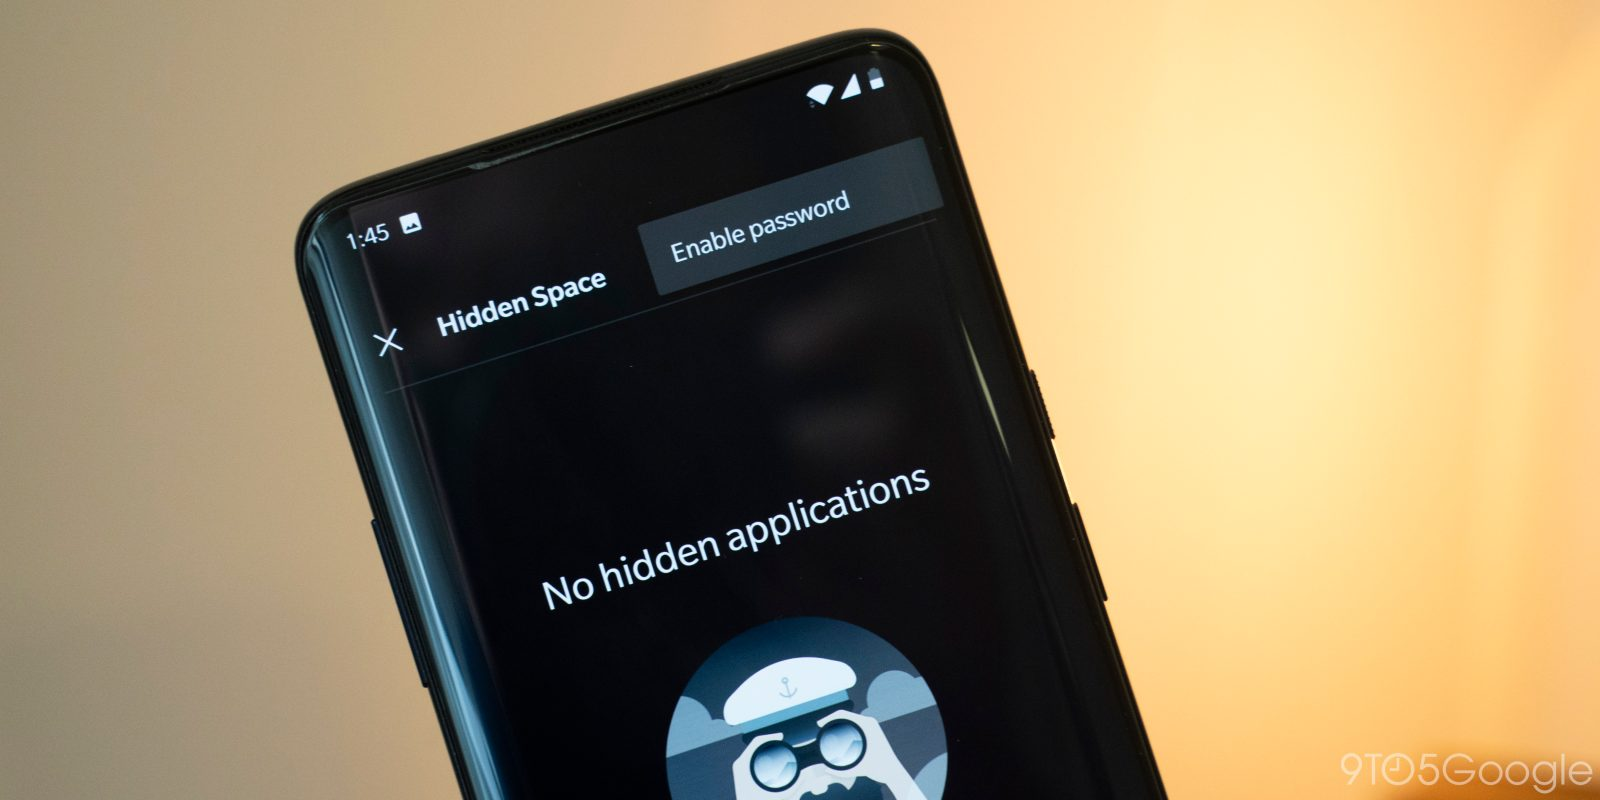 OnePlus Launcher supports a password for 'Hidden Space